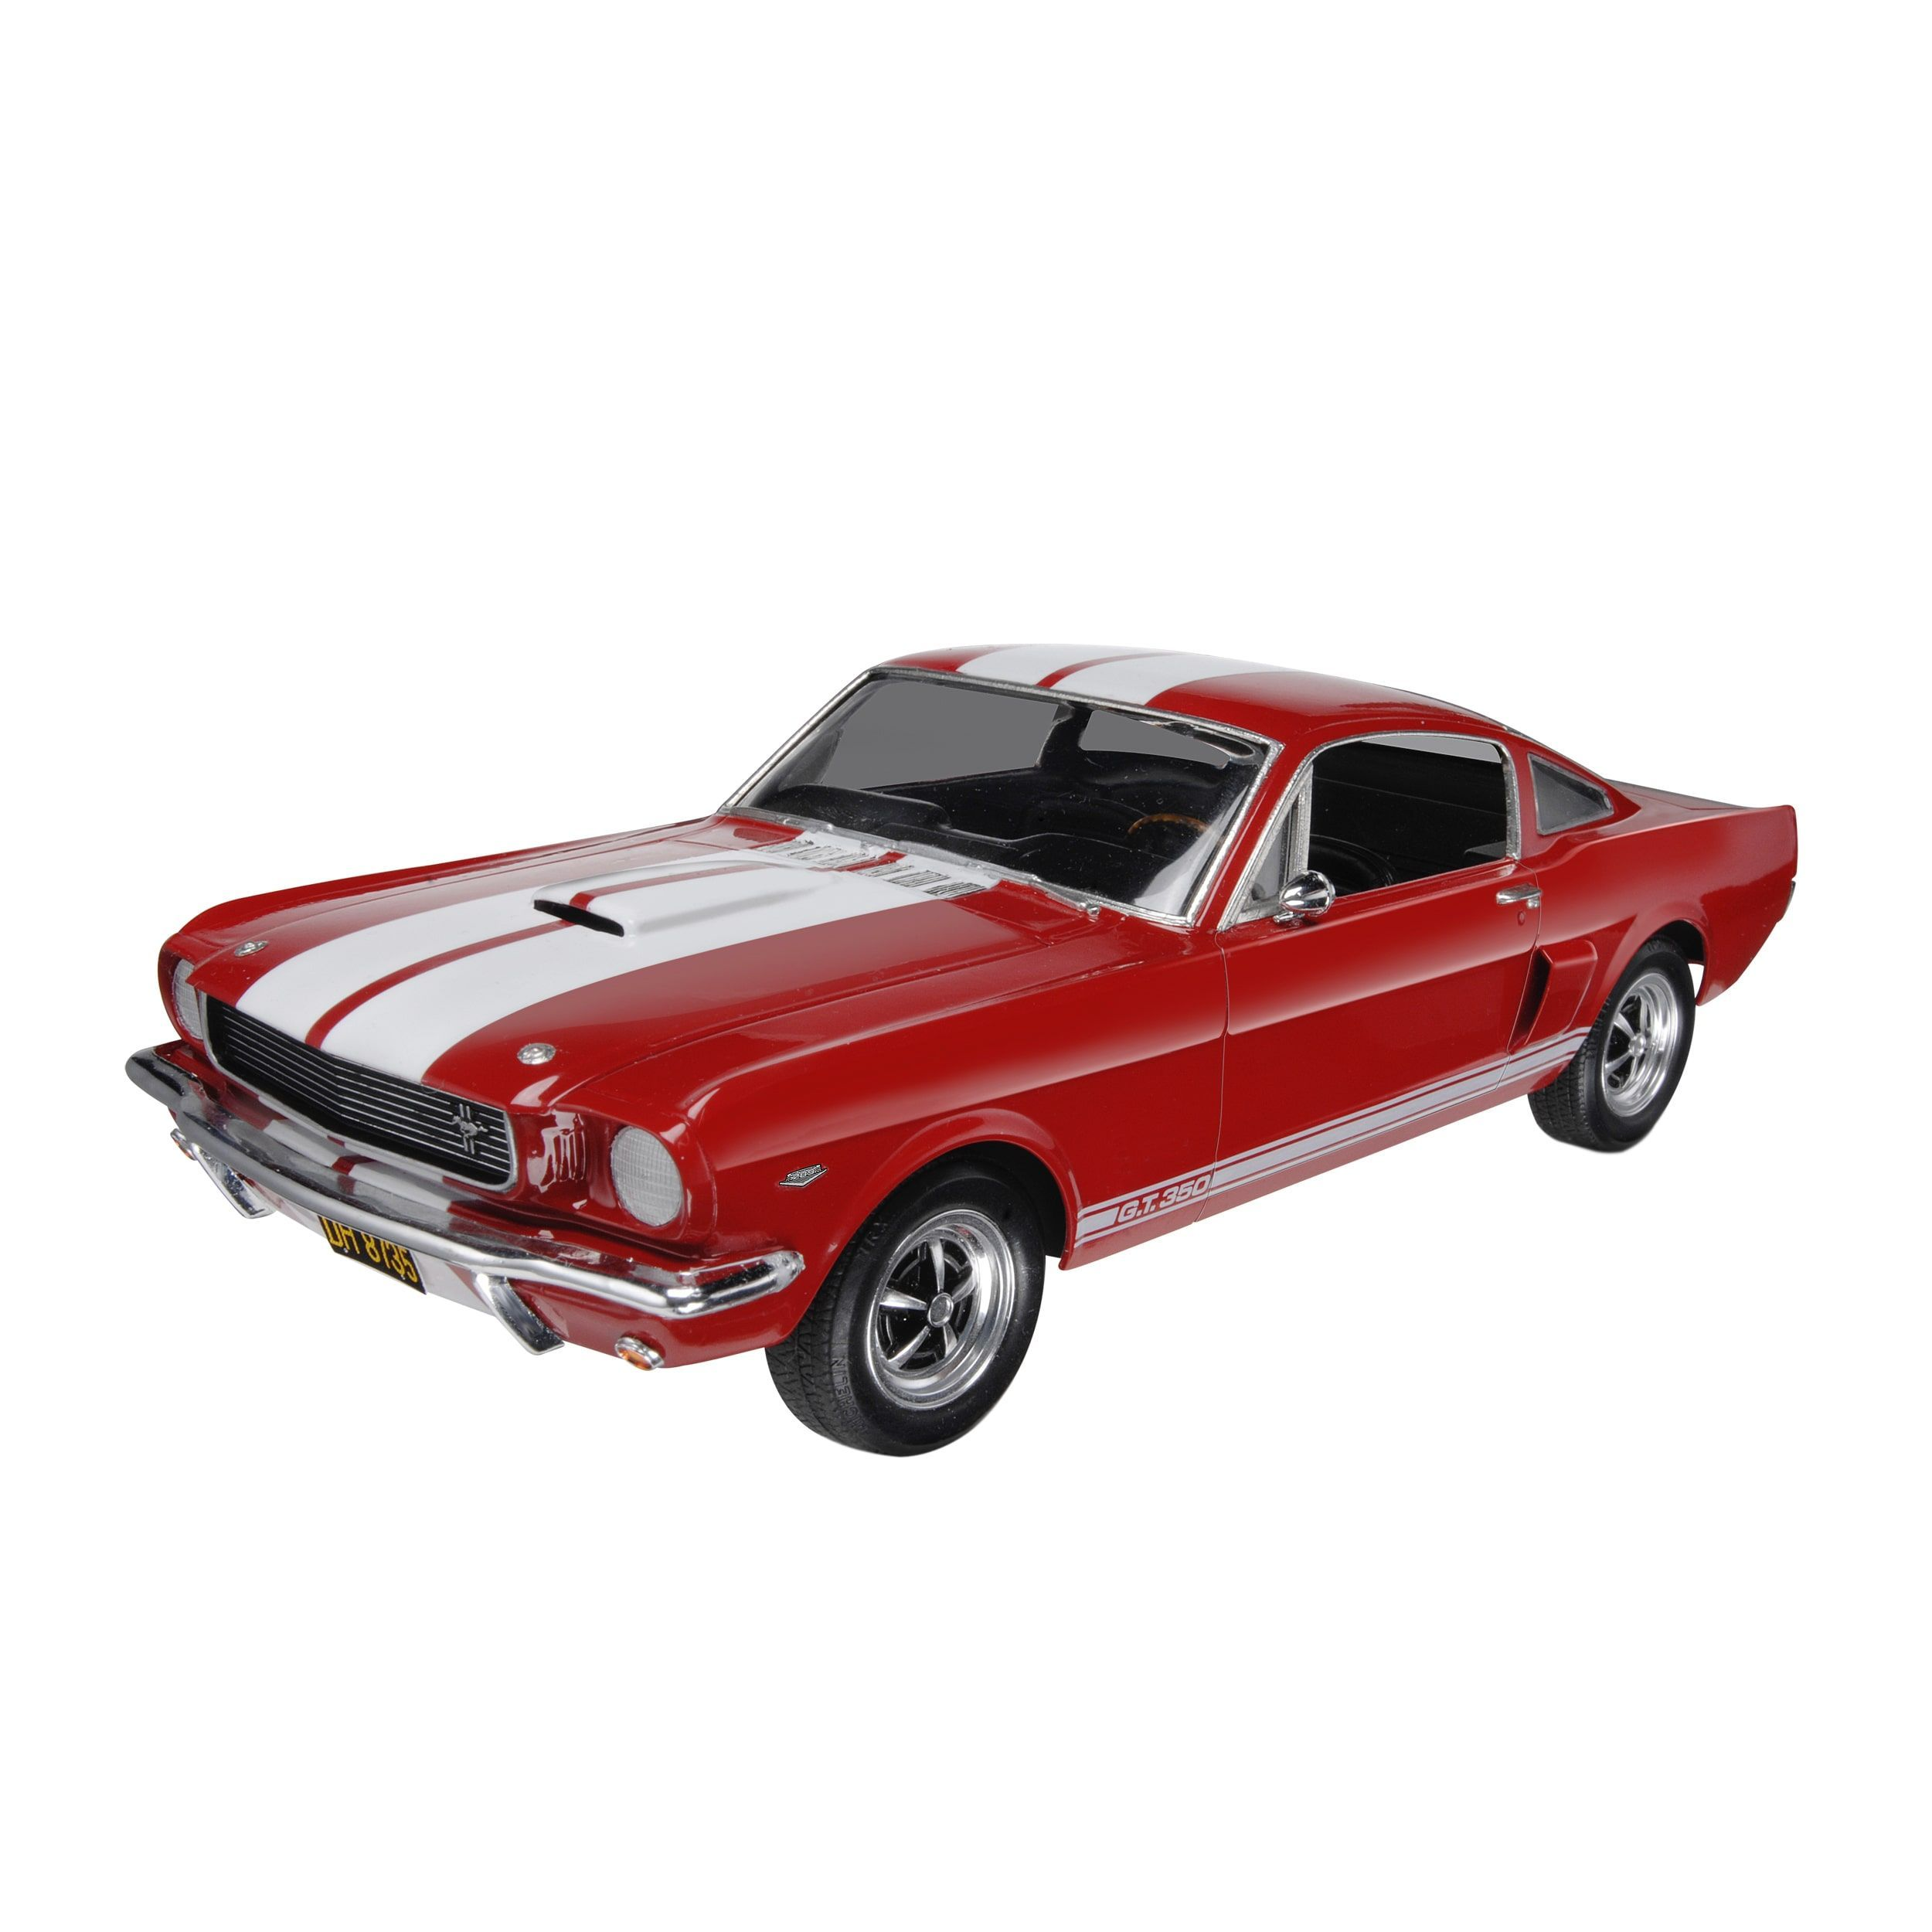 1 24 66 shelby mustang gt350 plastic model kit model kits pinterest shelby mustang kit cars and cars